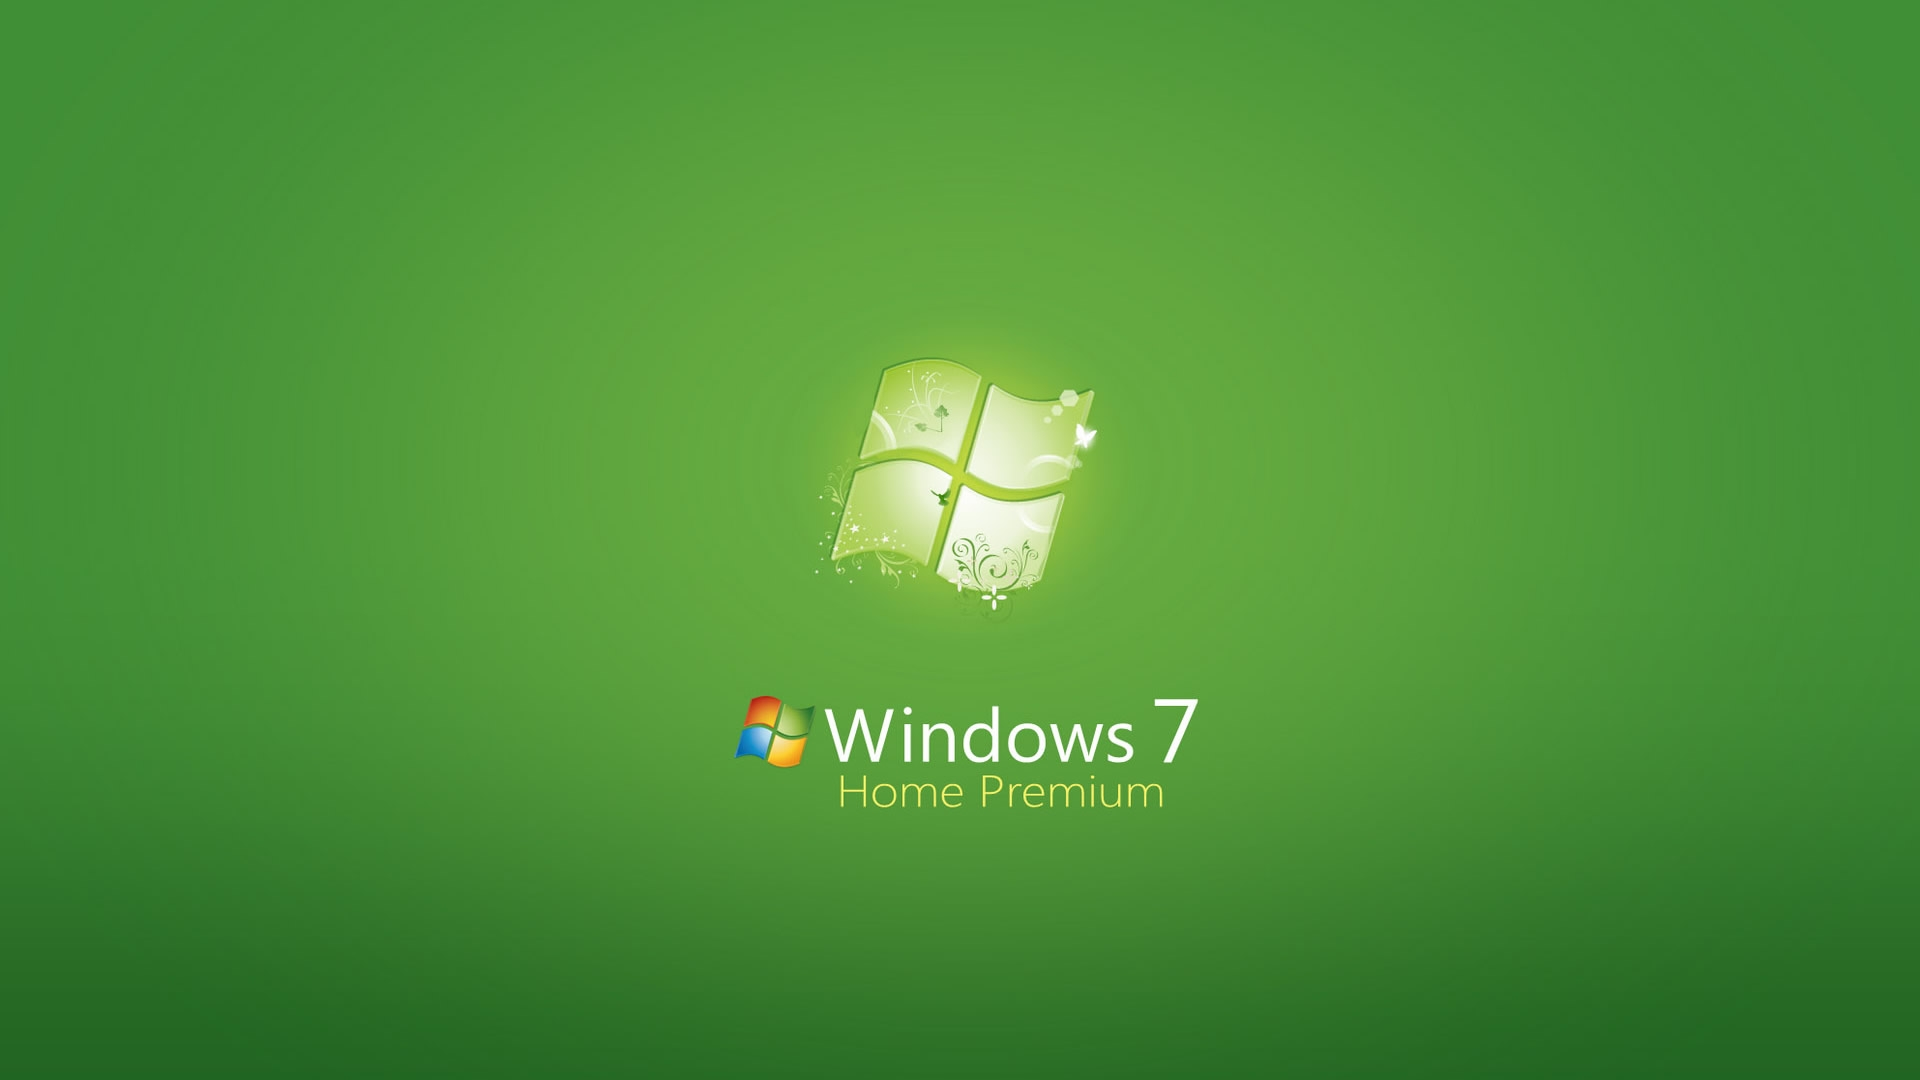 http://3.bp.blogspot.com/-D3hqnBjYN3I/UEy546XbJAI/AAAAAAAAI_k/4ujrTkbD8z8/s0/windows-7-home-premium-green-1920x1080-wallpaper.jpg